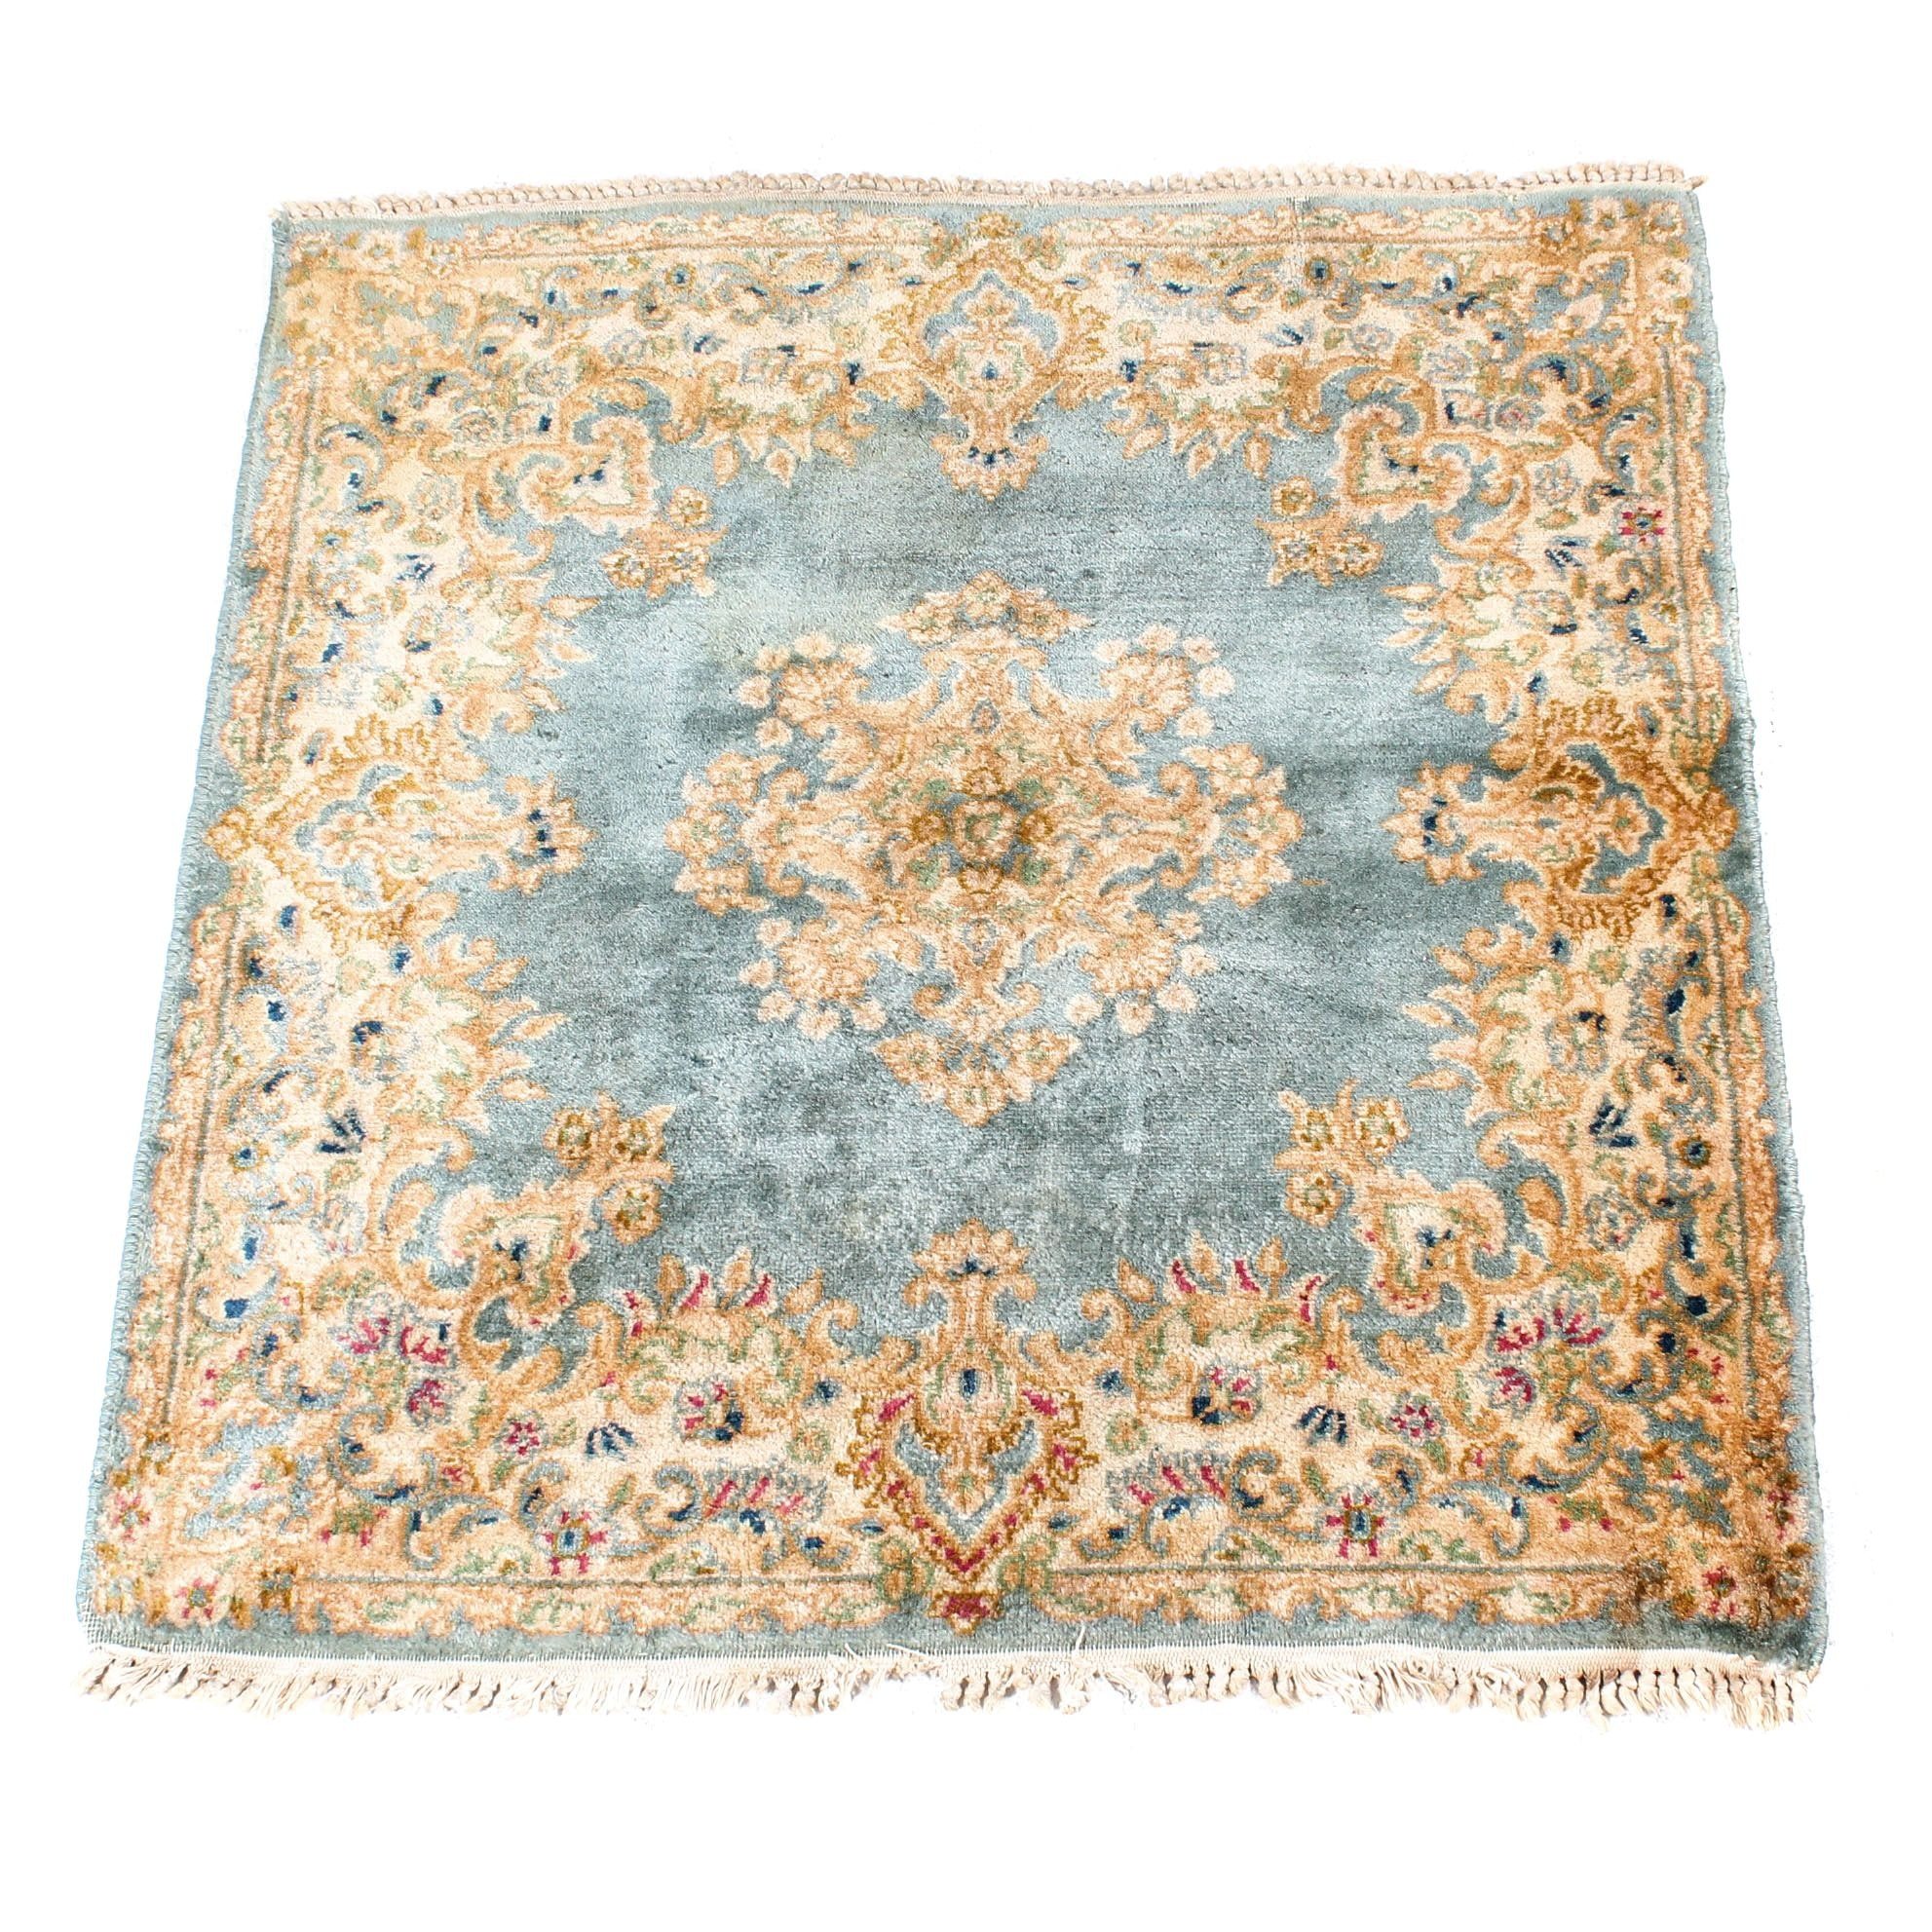 Semi-Antique Hand-Knotted Persian Kerman Rug